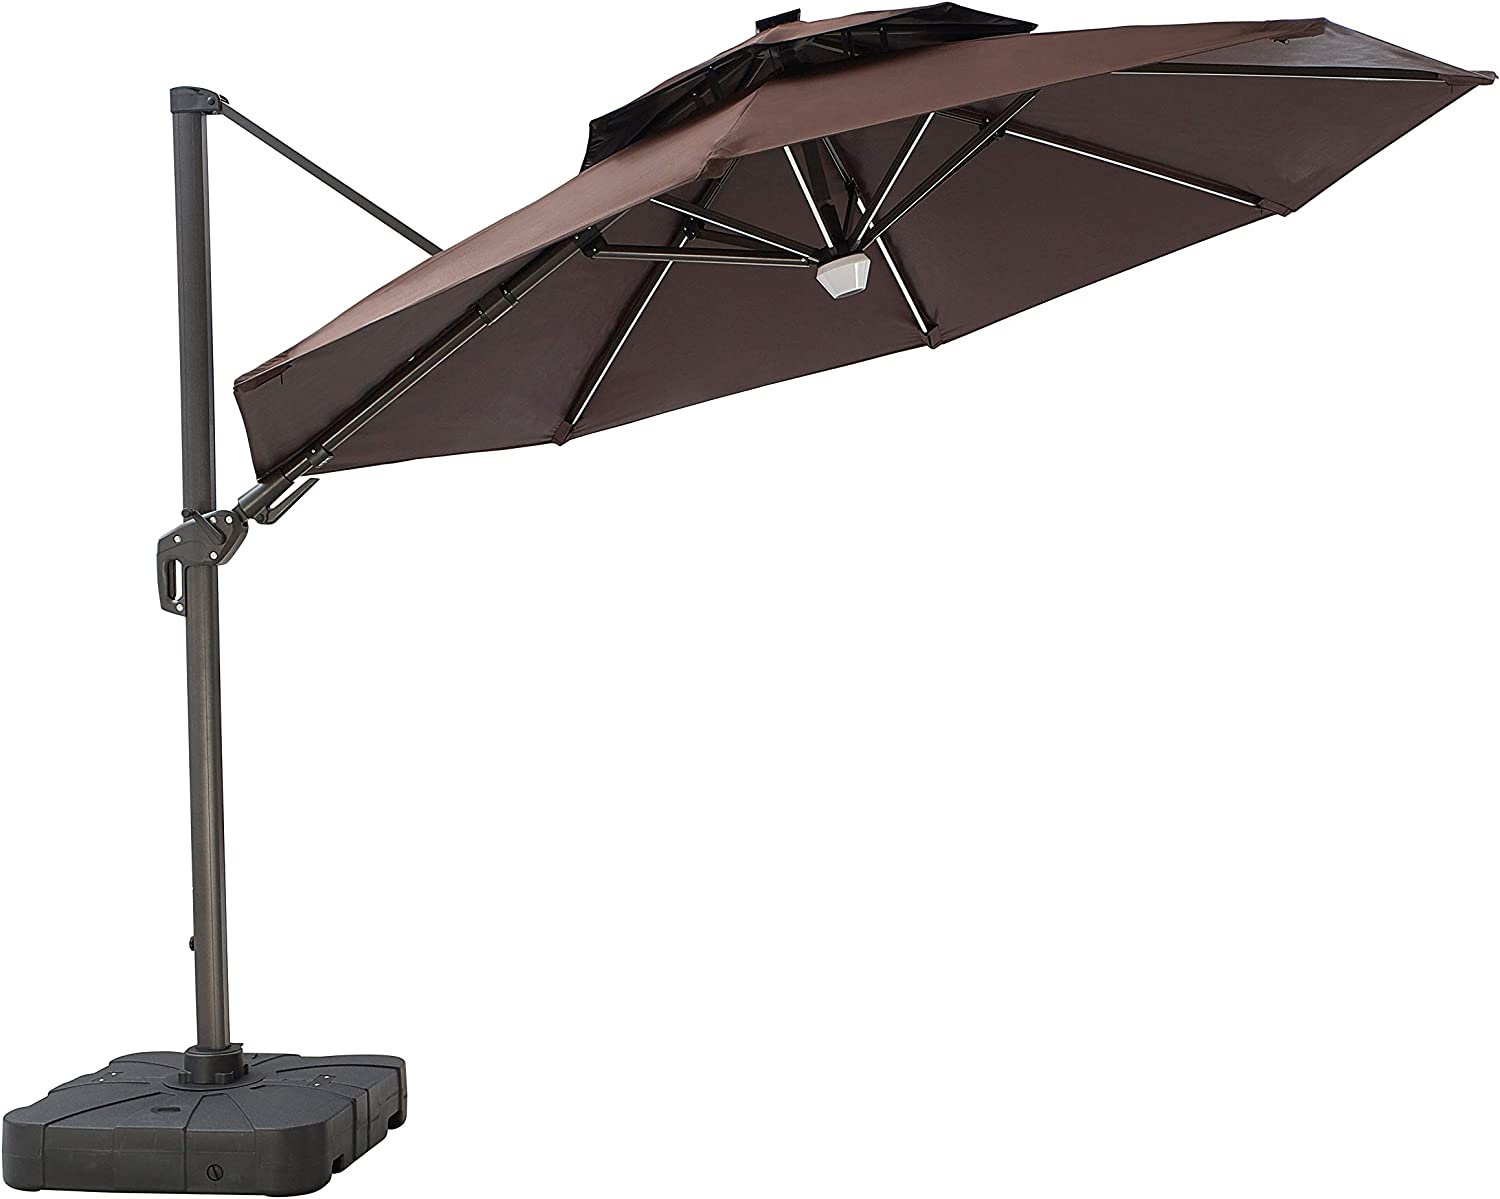 LOKATSE HOME 12 Ft Solar Powered Cantilever Patio Umbrella Set with Bluetooth Speaker and 8 LED Light Bars Metal Pole 360 Degree Rotation, Tilt Angle Adjustable, Include Base, Coffee